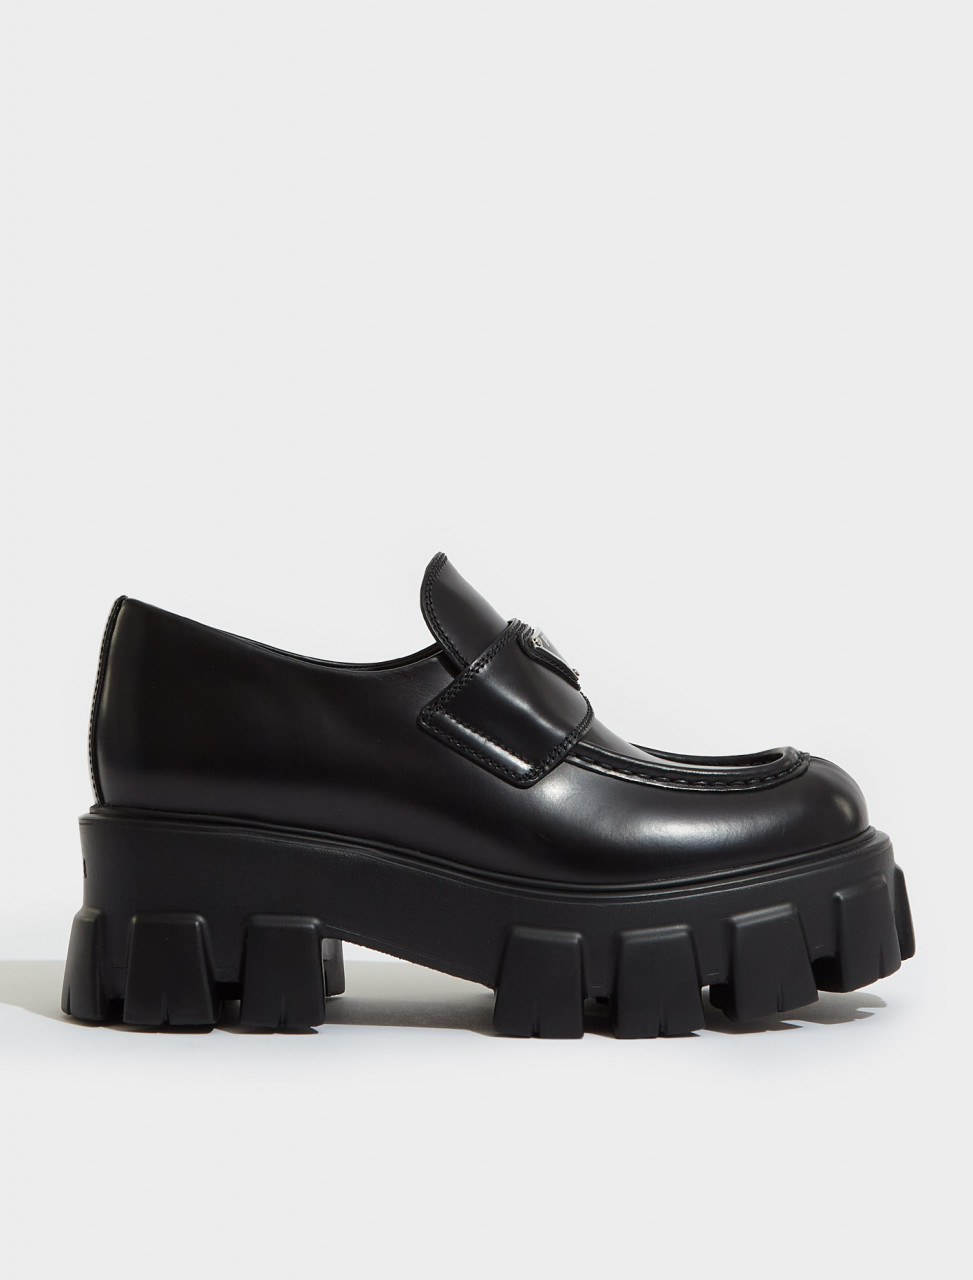 1D649M_B4L_F0002 PRADA MONOLITH BRUSHED LEATHER LOAFERS IN BLACK